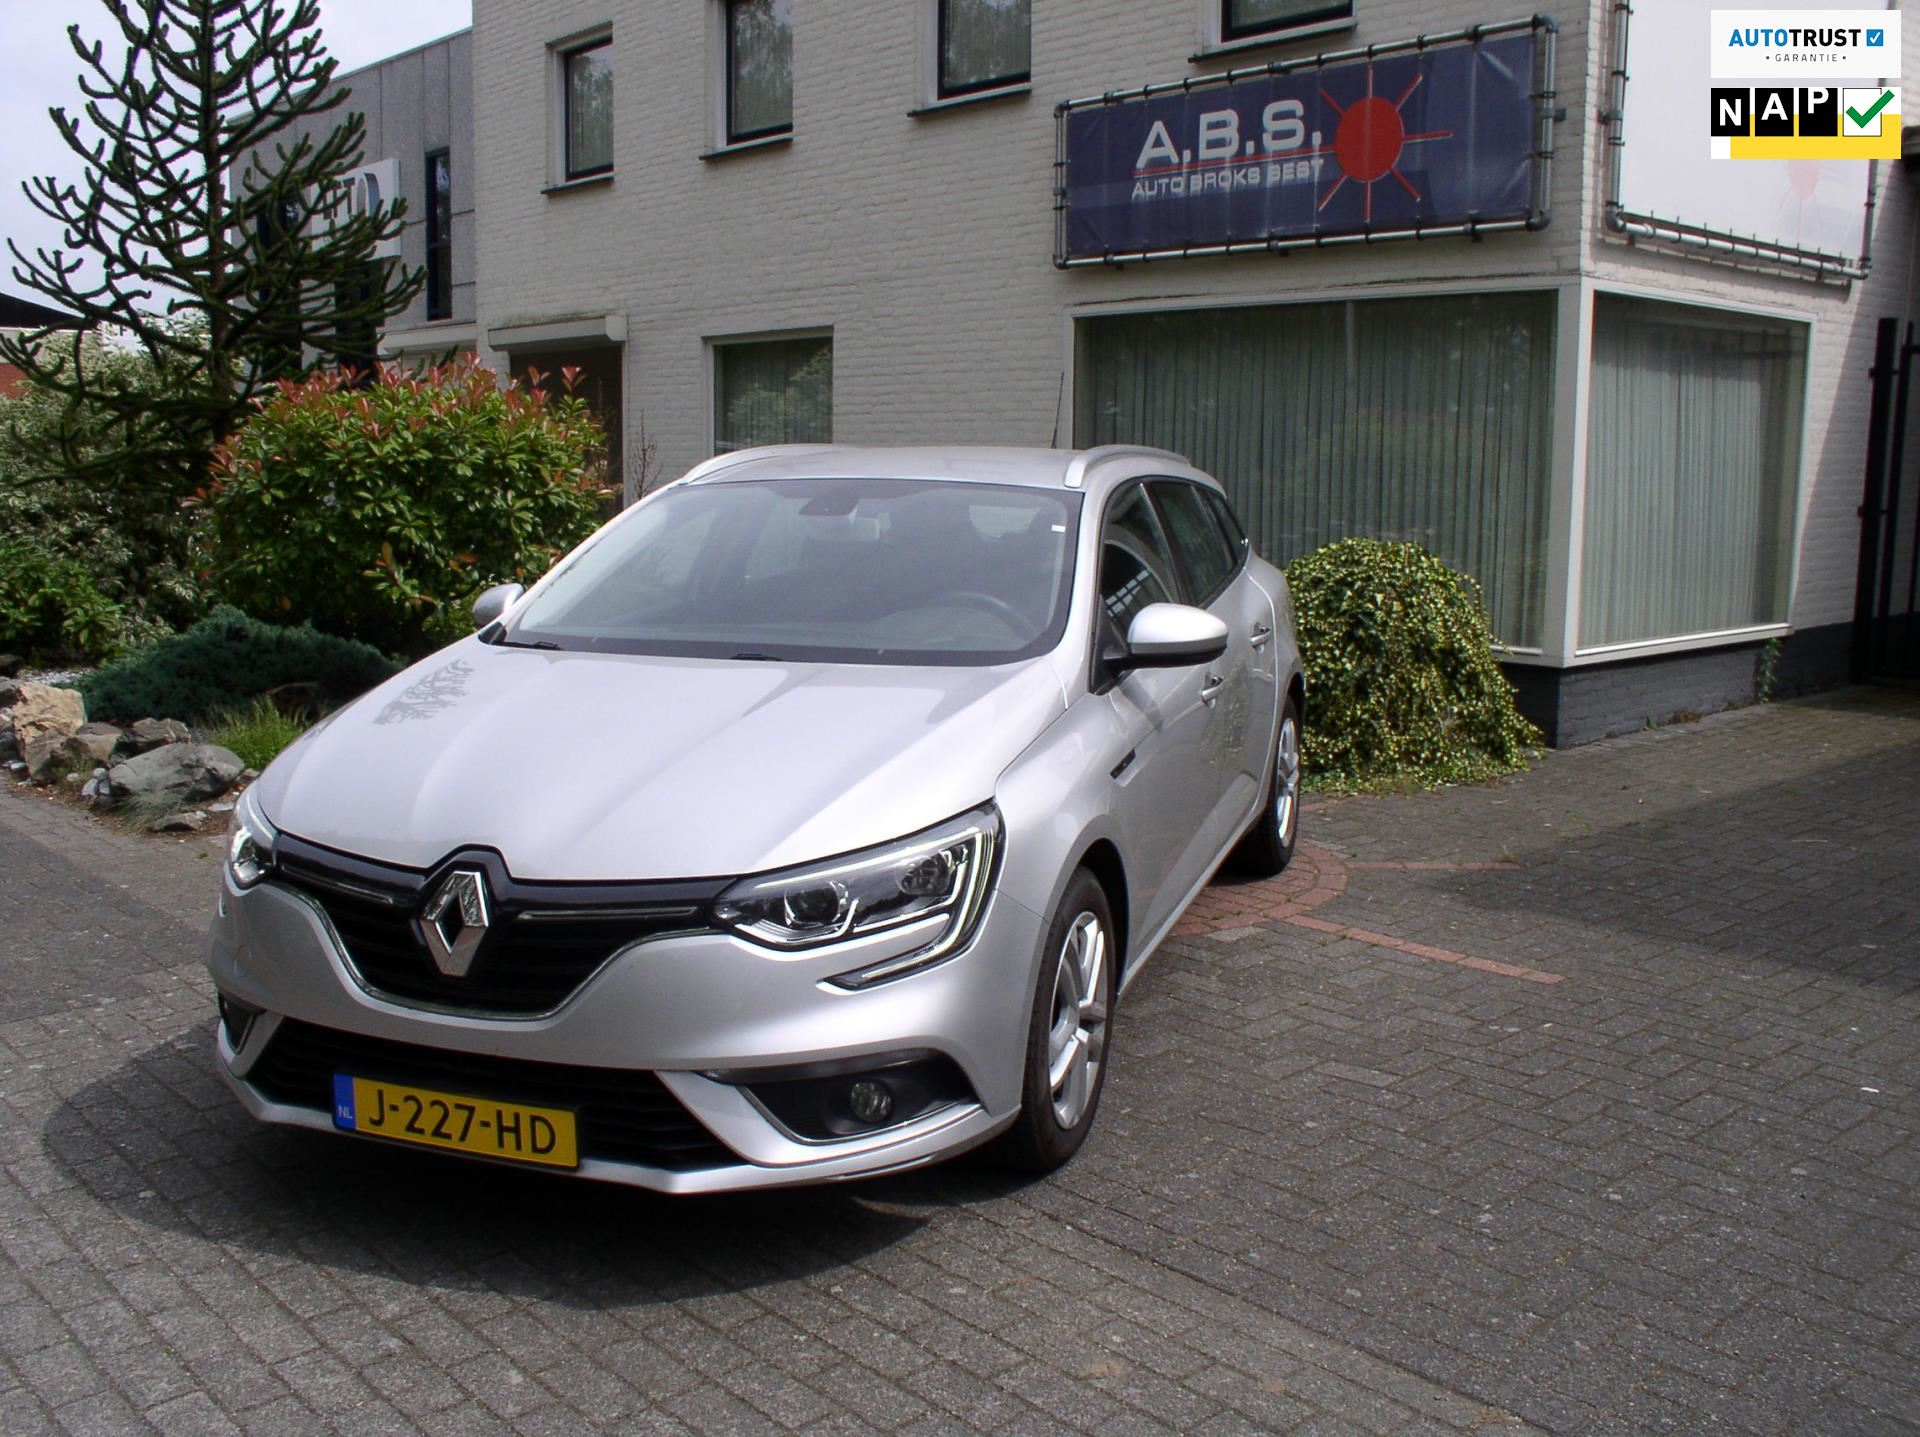 Renault Mégane Estate occasion - Auto Broks Son B.V.